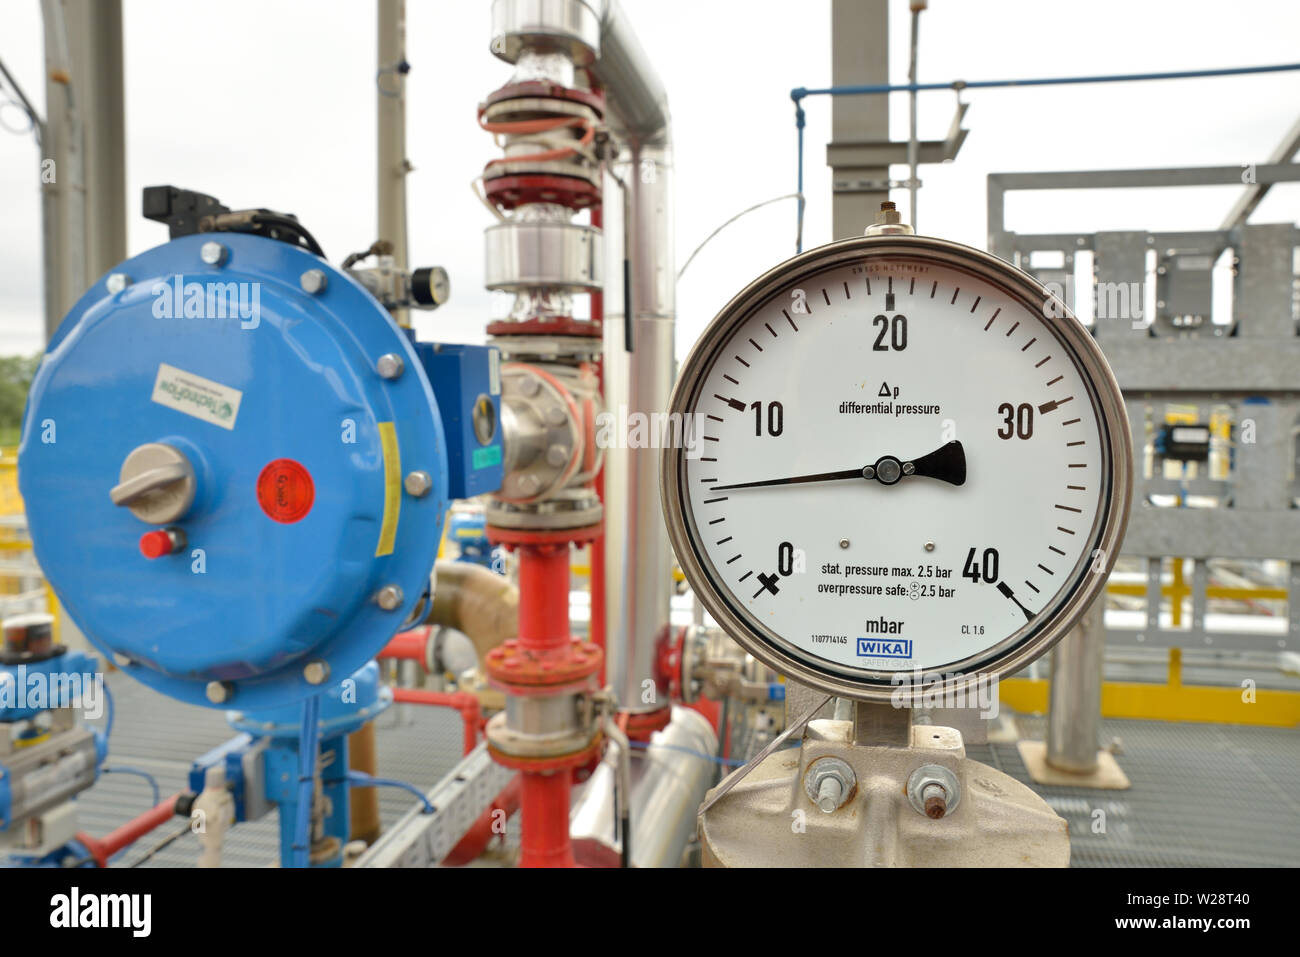 Pressure gauge in a pipeline control station - Stock Image